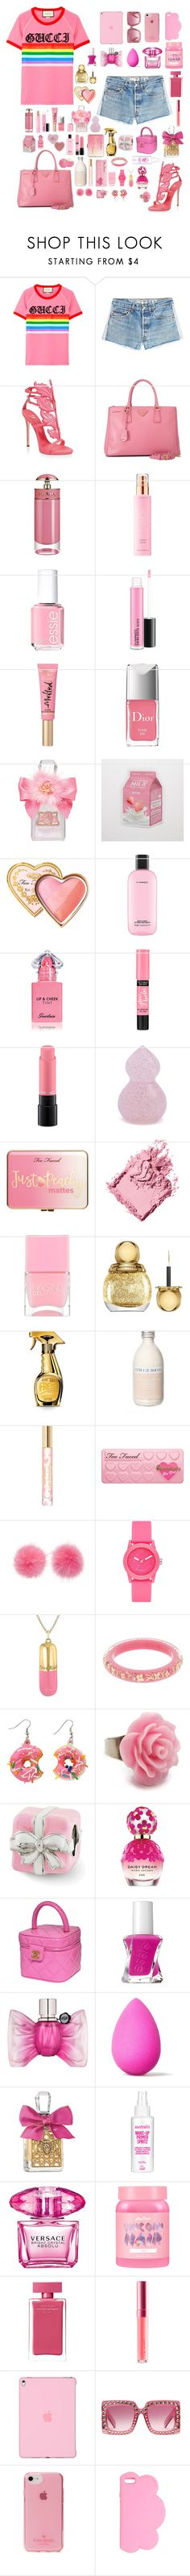 """Strawberry Milkshake"" by ciaobella18 ❤ liked on Polyvore featuring Gucci, RE/DONE, Giuseppe Zanotti, Prada, KORA Organics by Miranda Kerr, Essie, Too Faced Cosmetics, Christian Dior, Juicy Couture and Aerie"